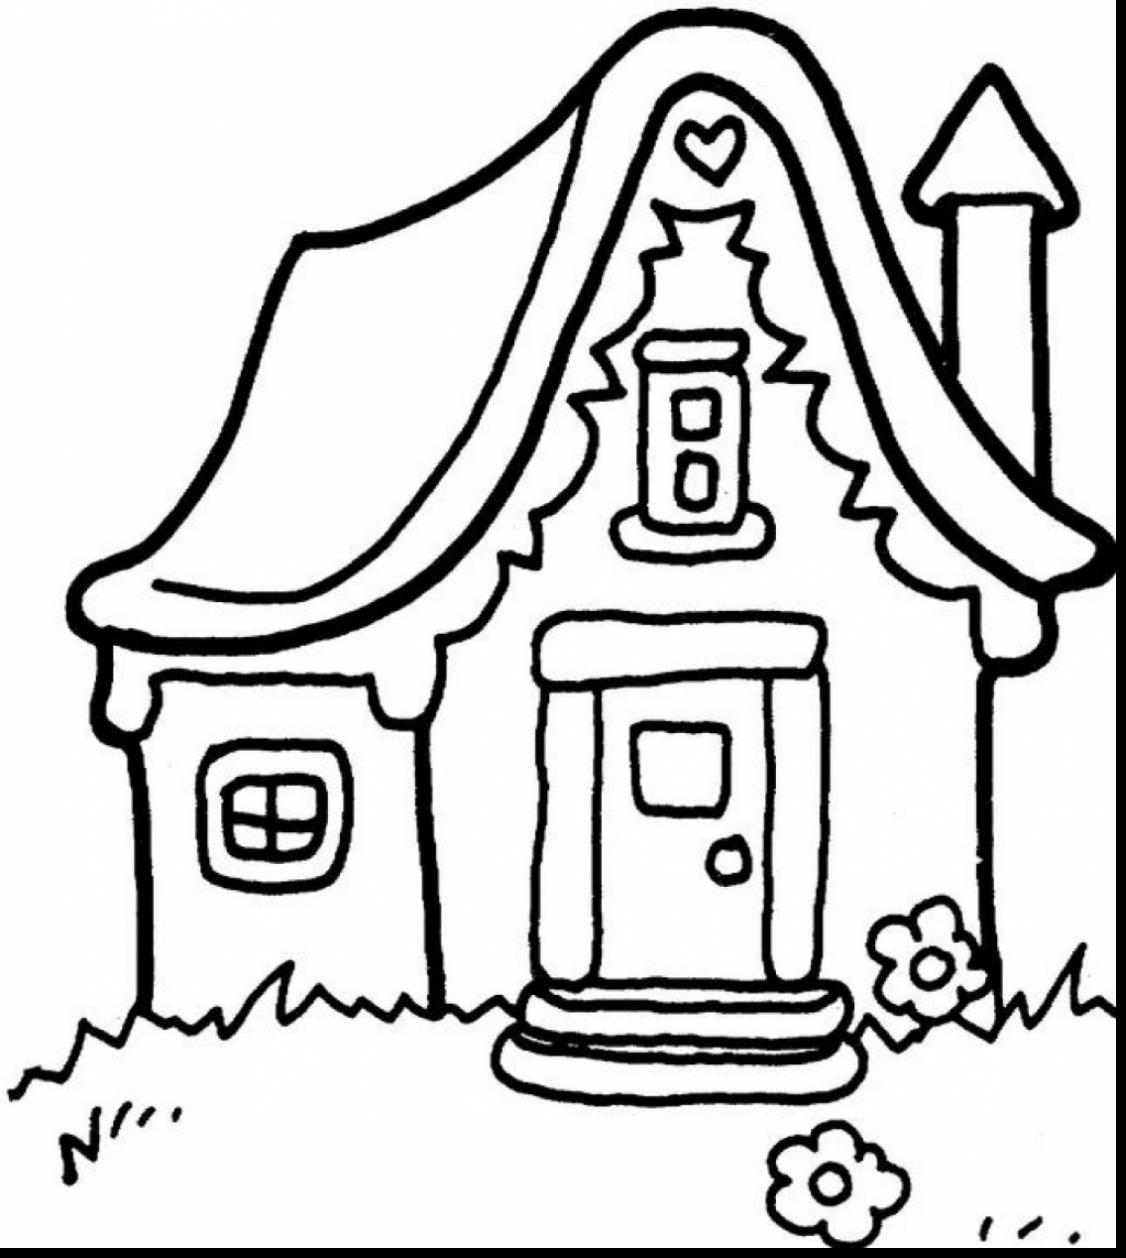 Gingerbread Man Coloring Page | Free download best Gingerbread Man ...